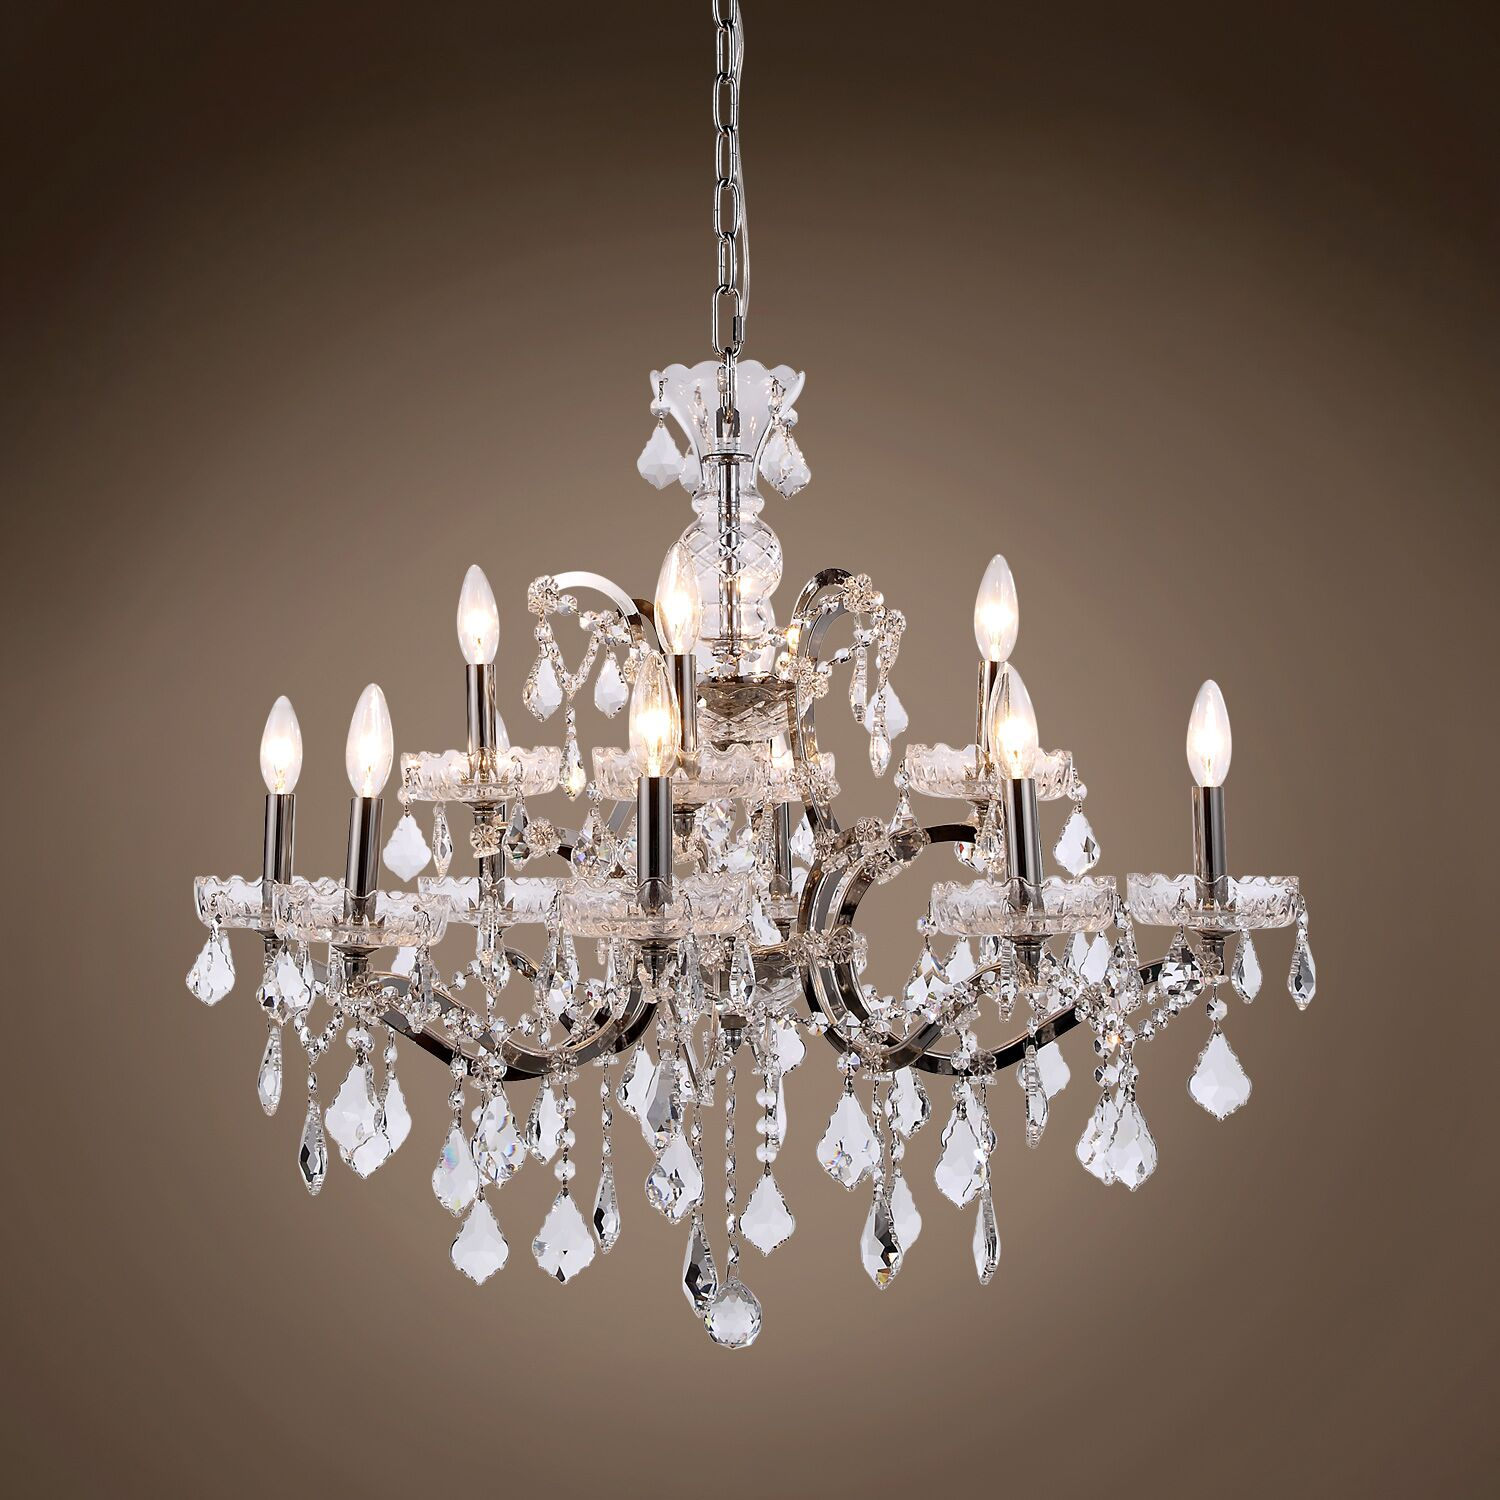 Chantrell 12-Light Chandelier Crystal Color: Clear, Finish: Polished Nickel